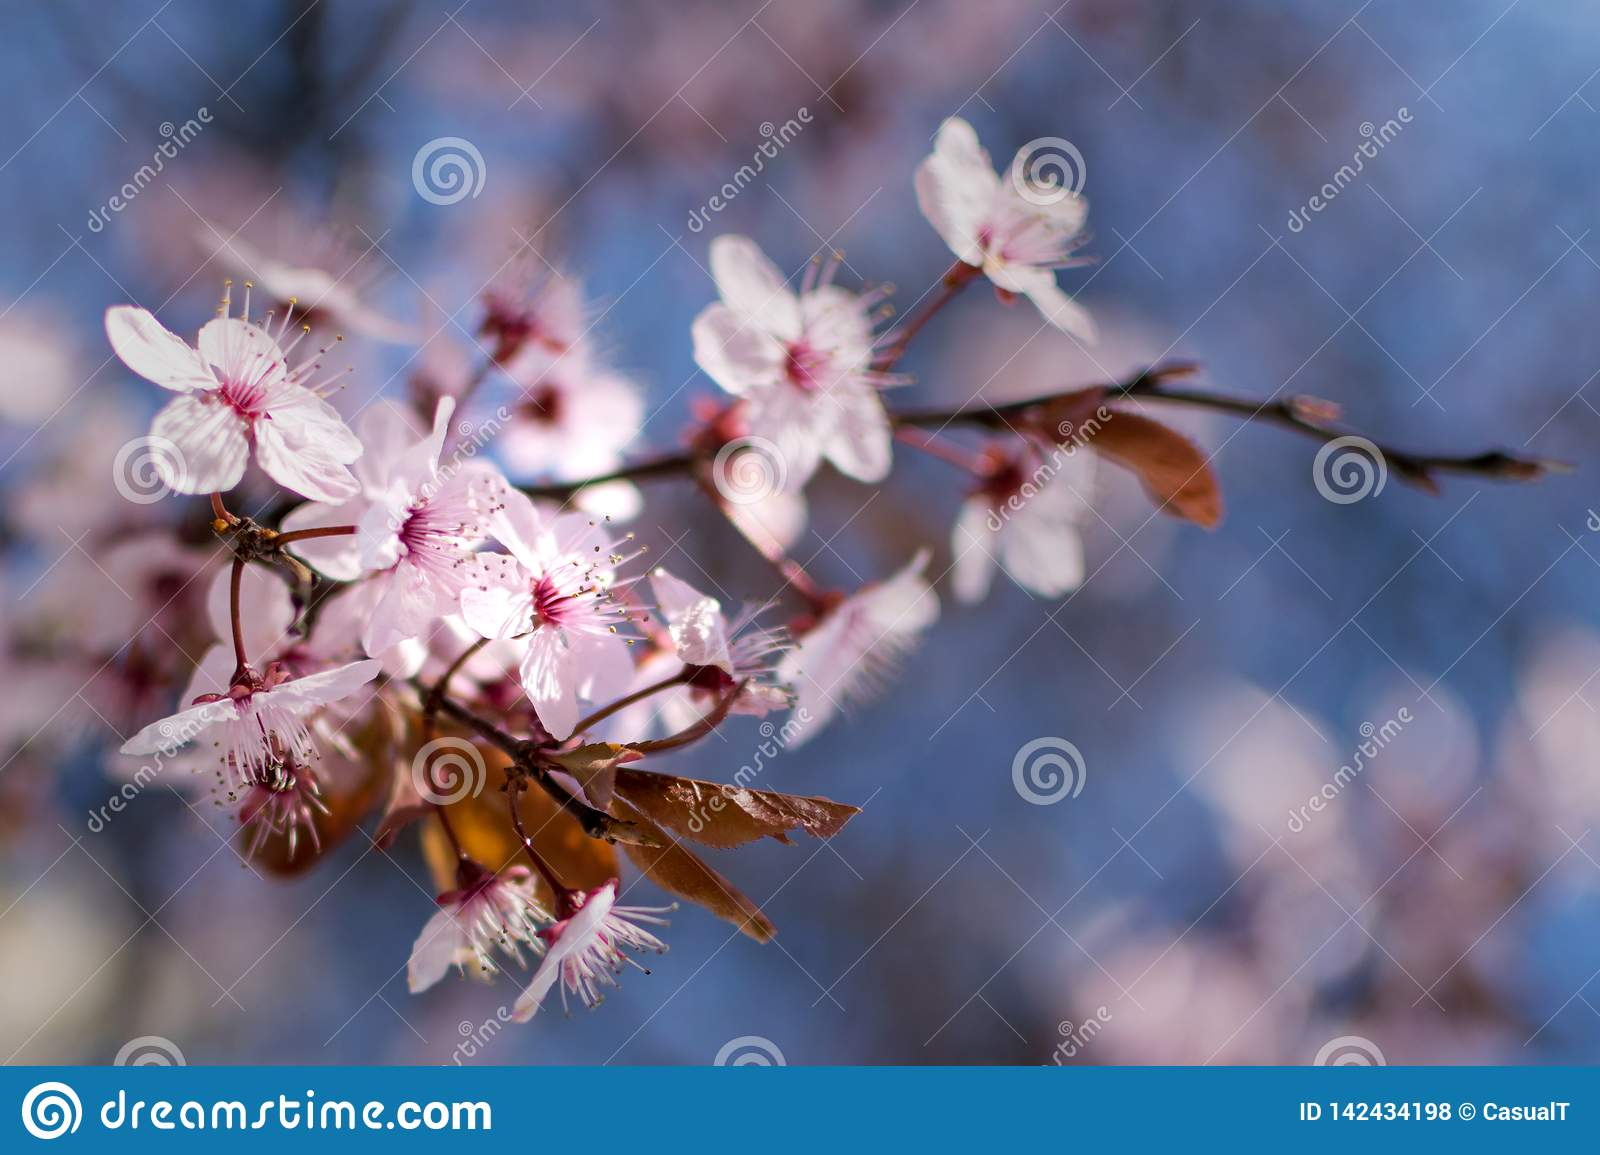 Japanese cherry blossoms against a light blue bokeh background, close-up